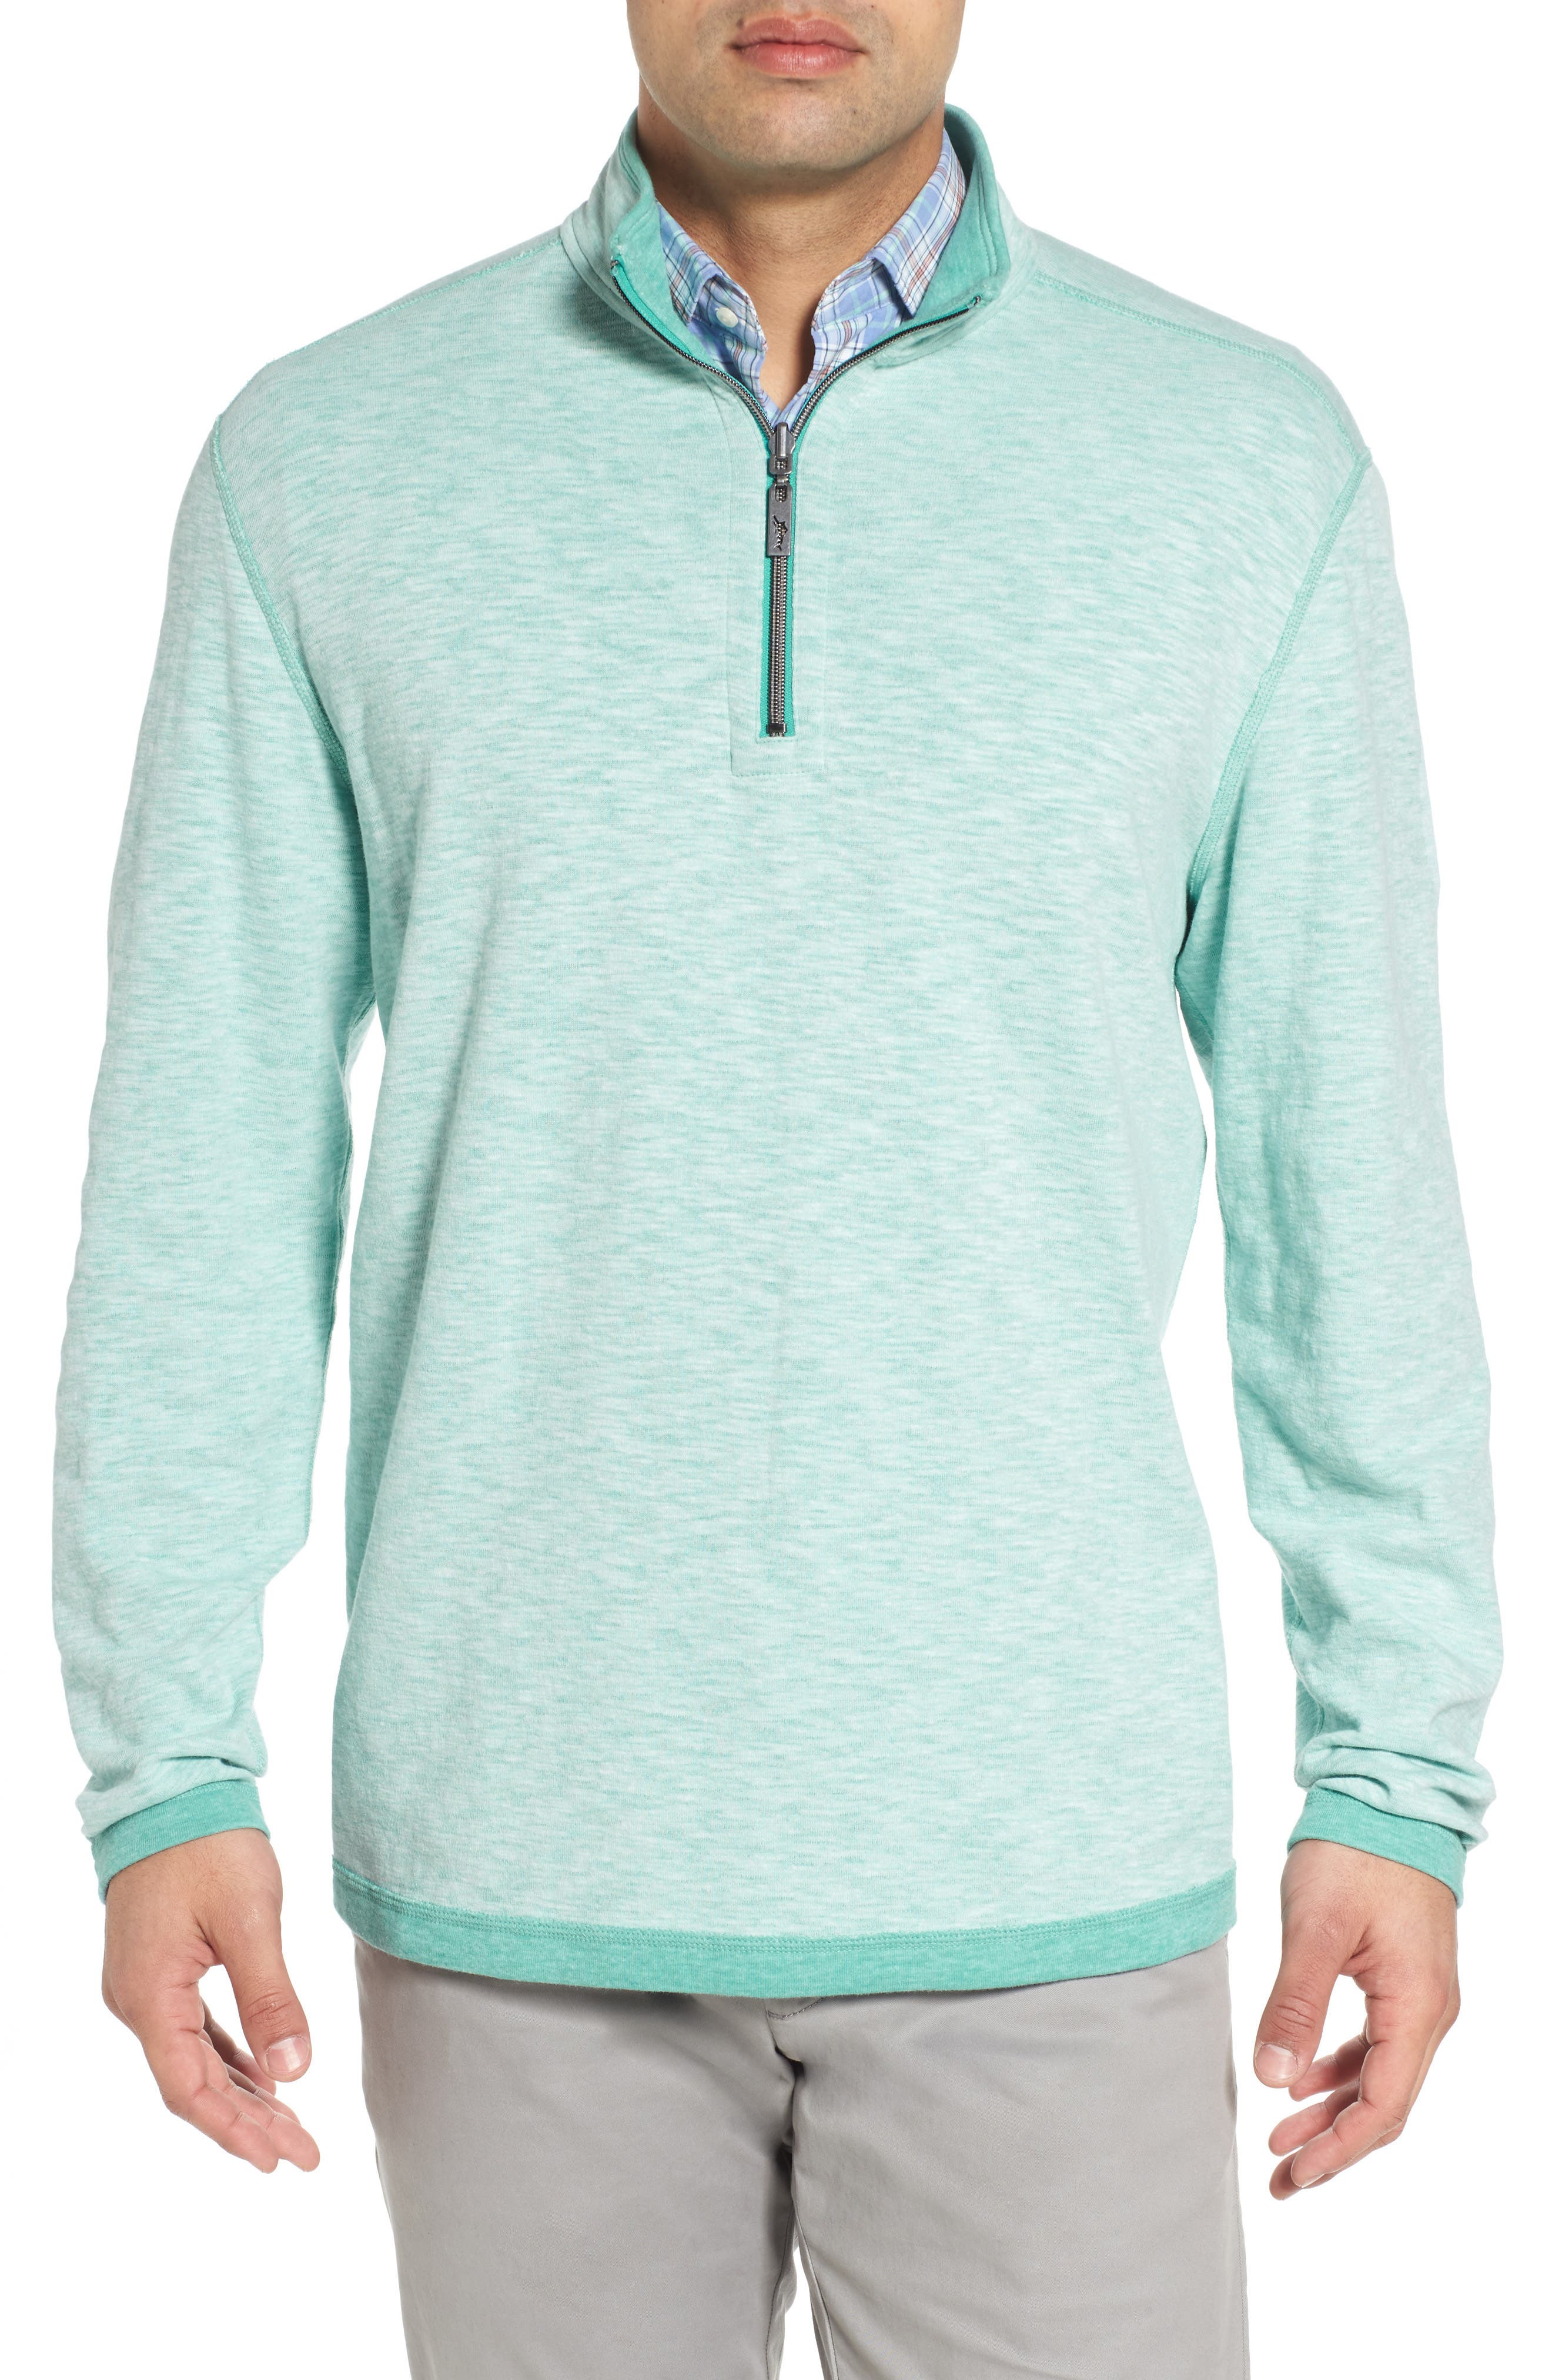 Main Image - Tommy Bahama Sea Glass Reversible Quarter Zip Pullover